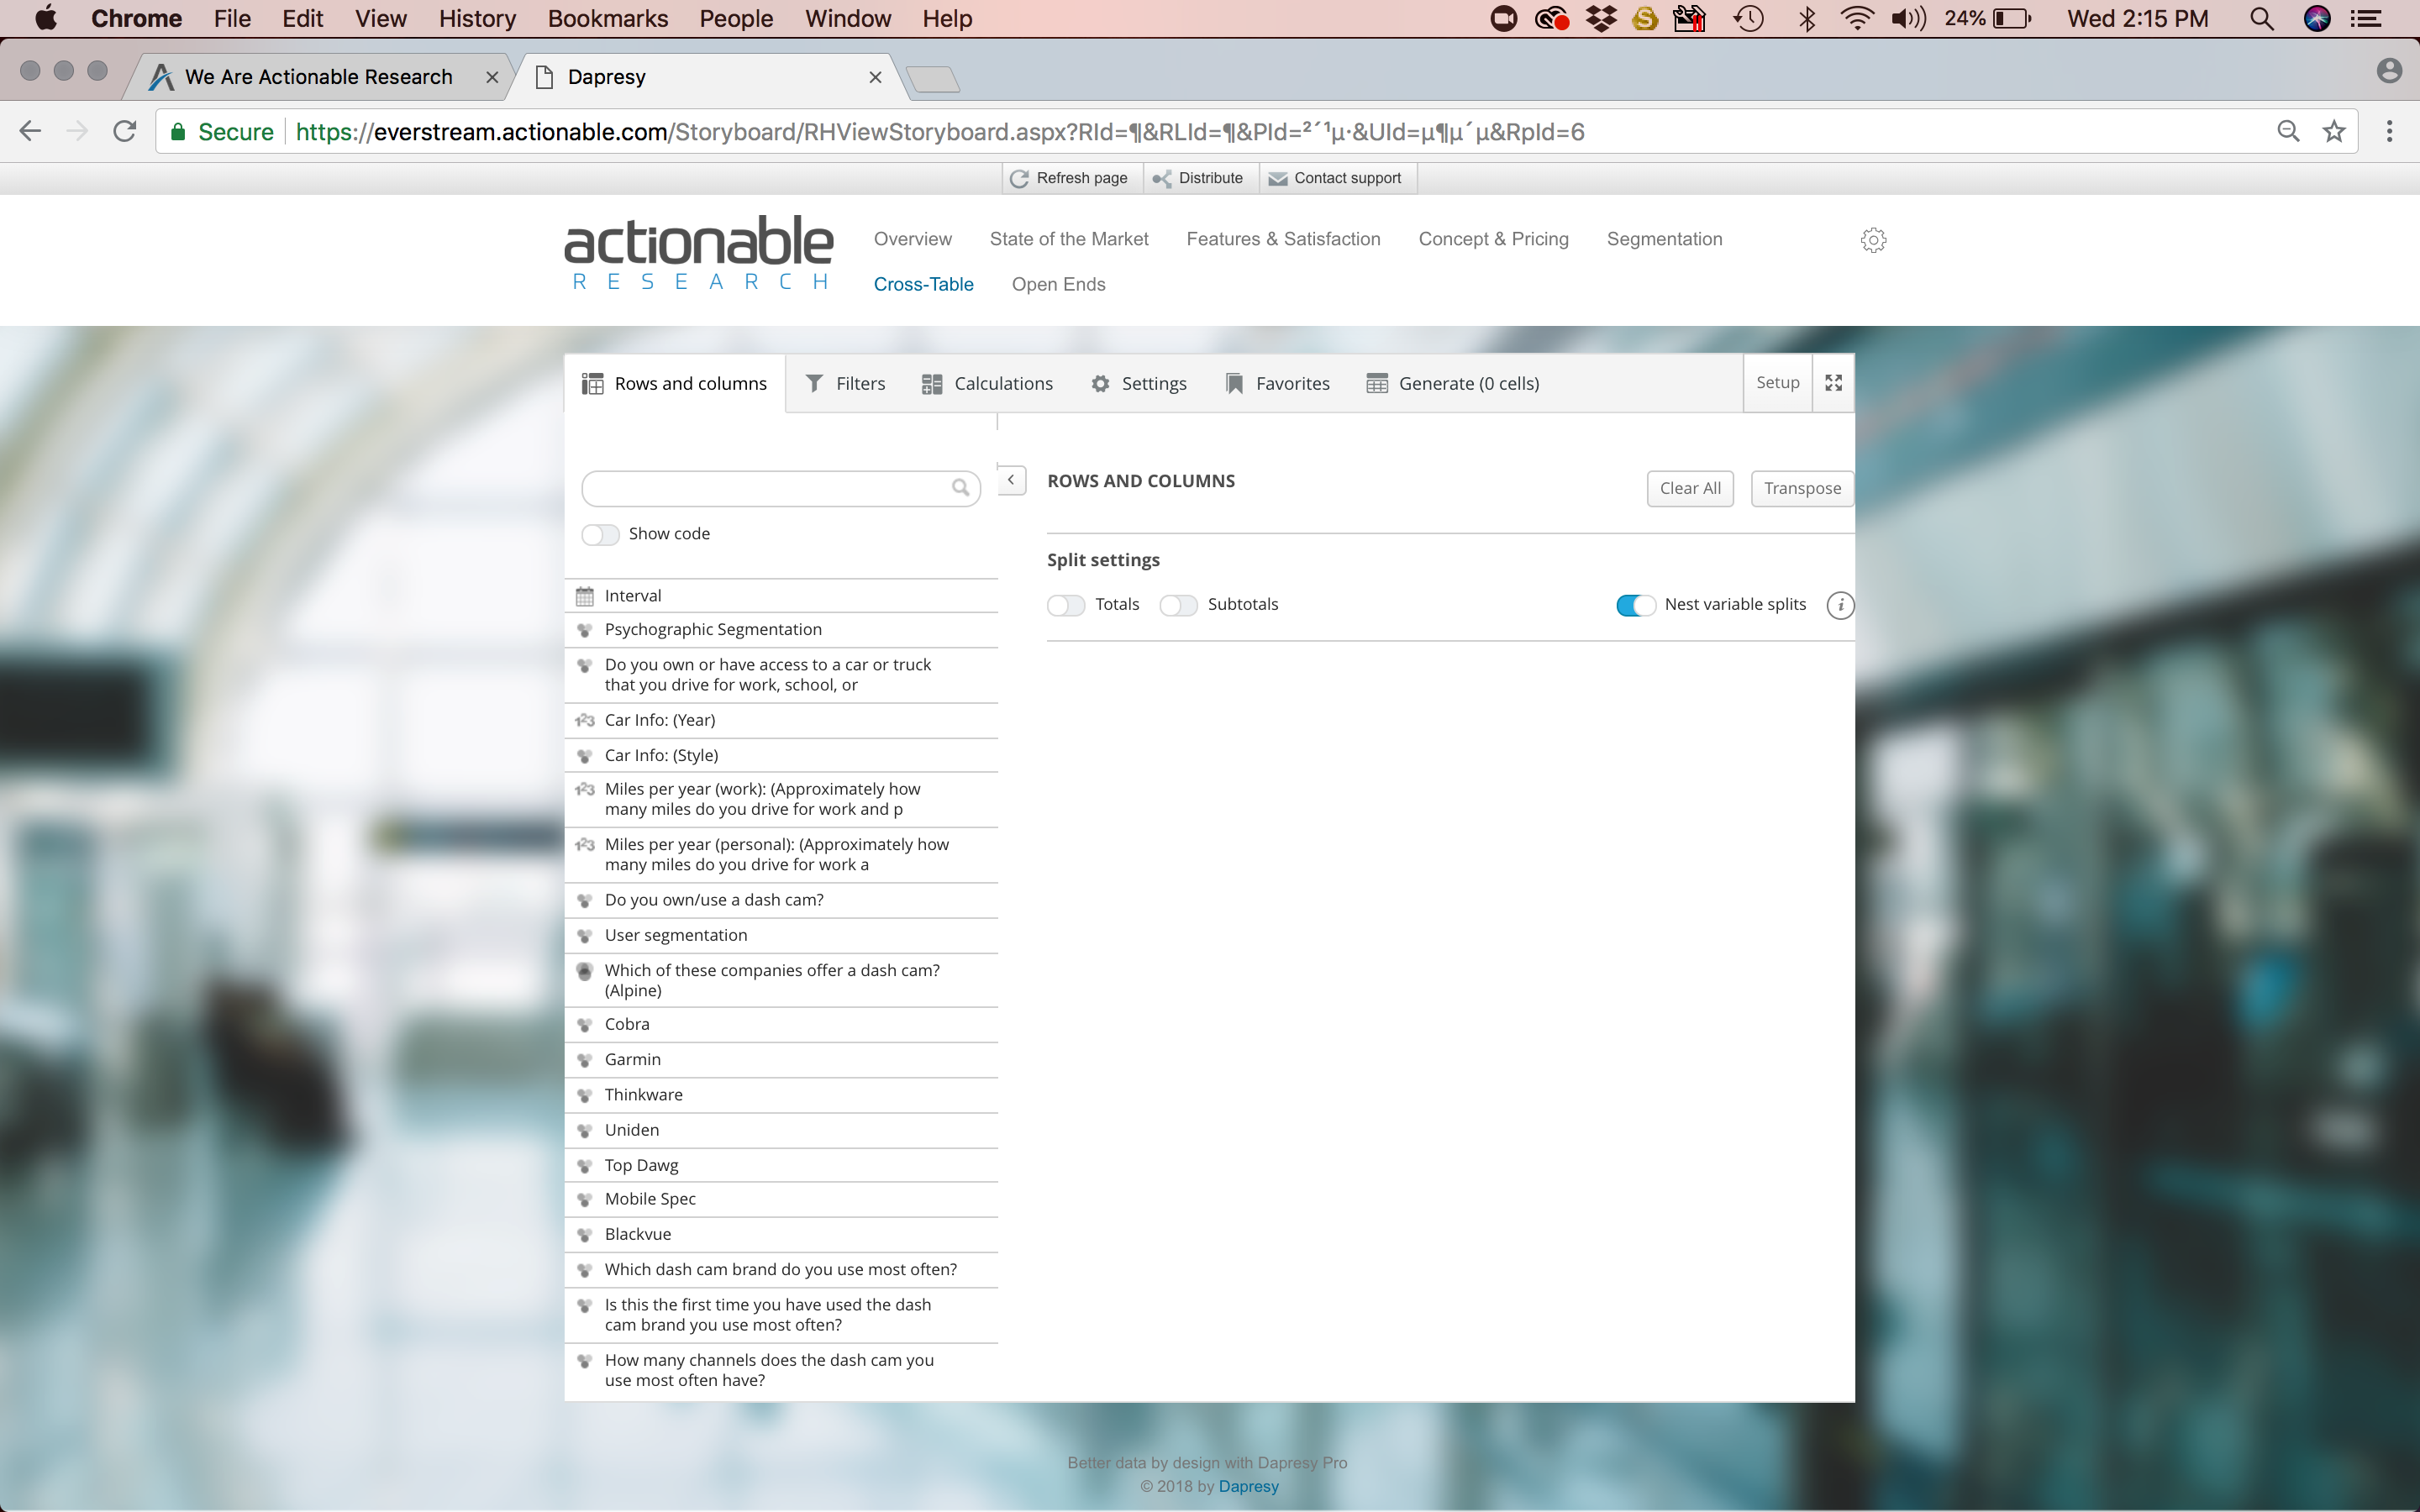 Actionable Research EverStream Reporter